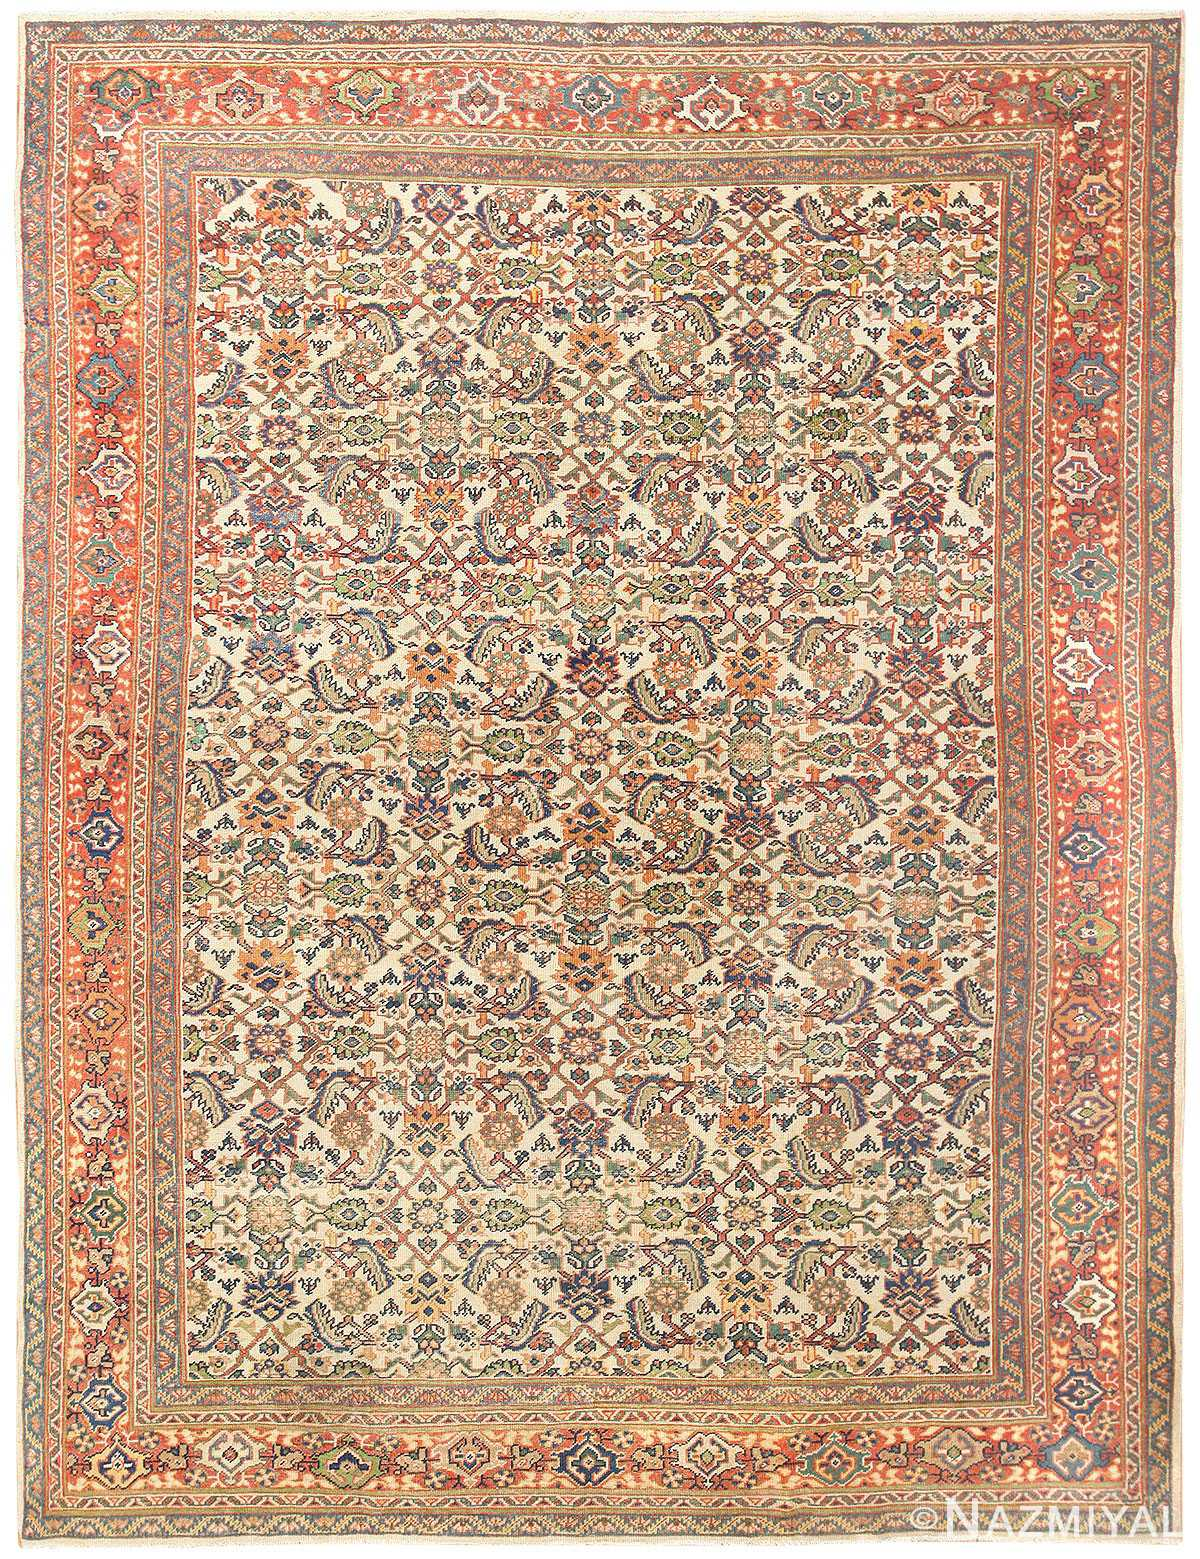 Antique Persian Sultanabad Carpet 50248 Nazmiyal